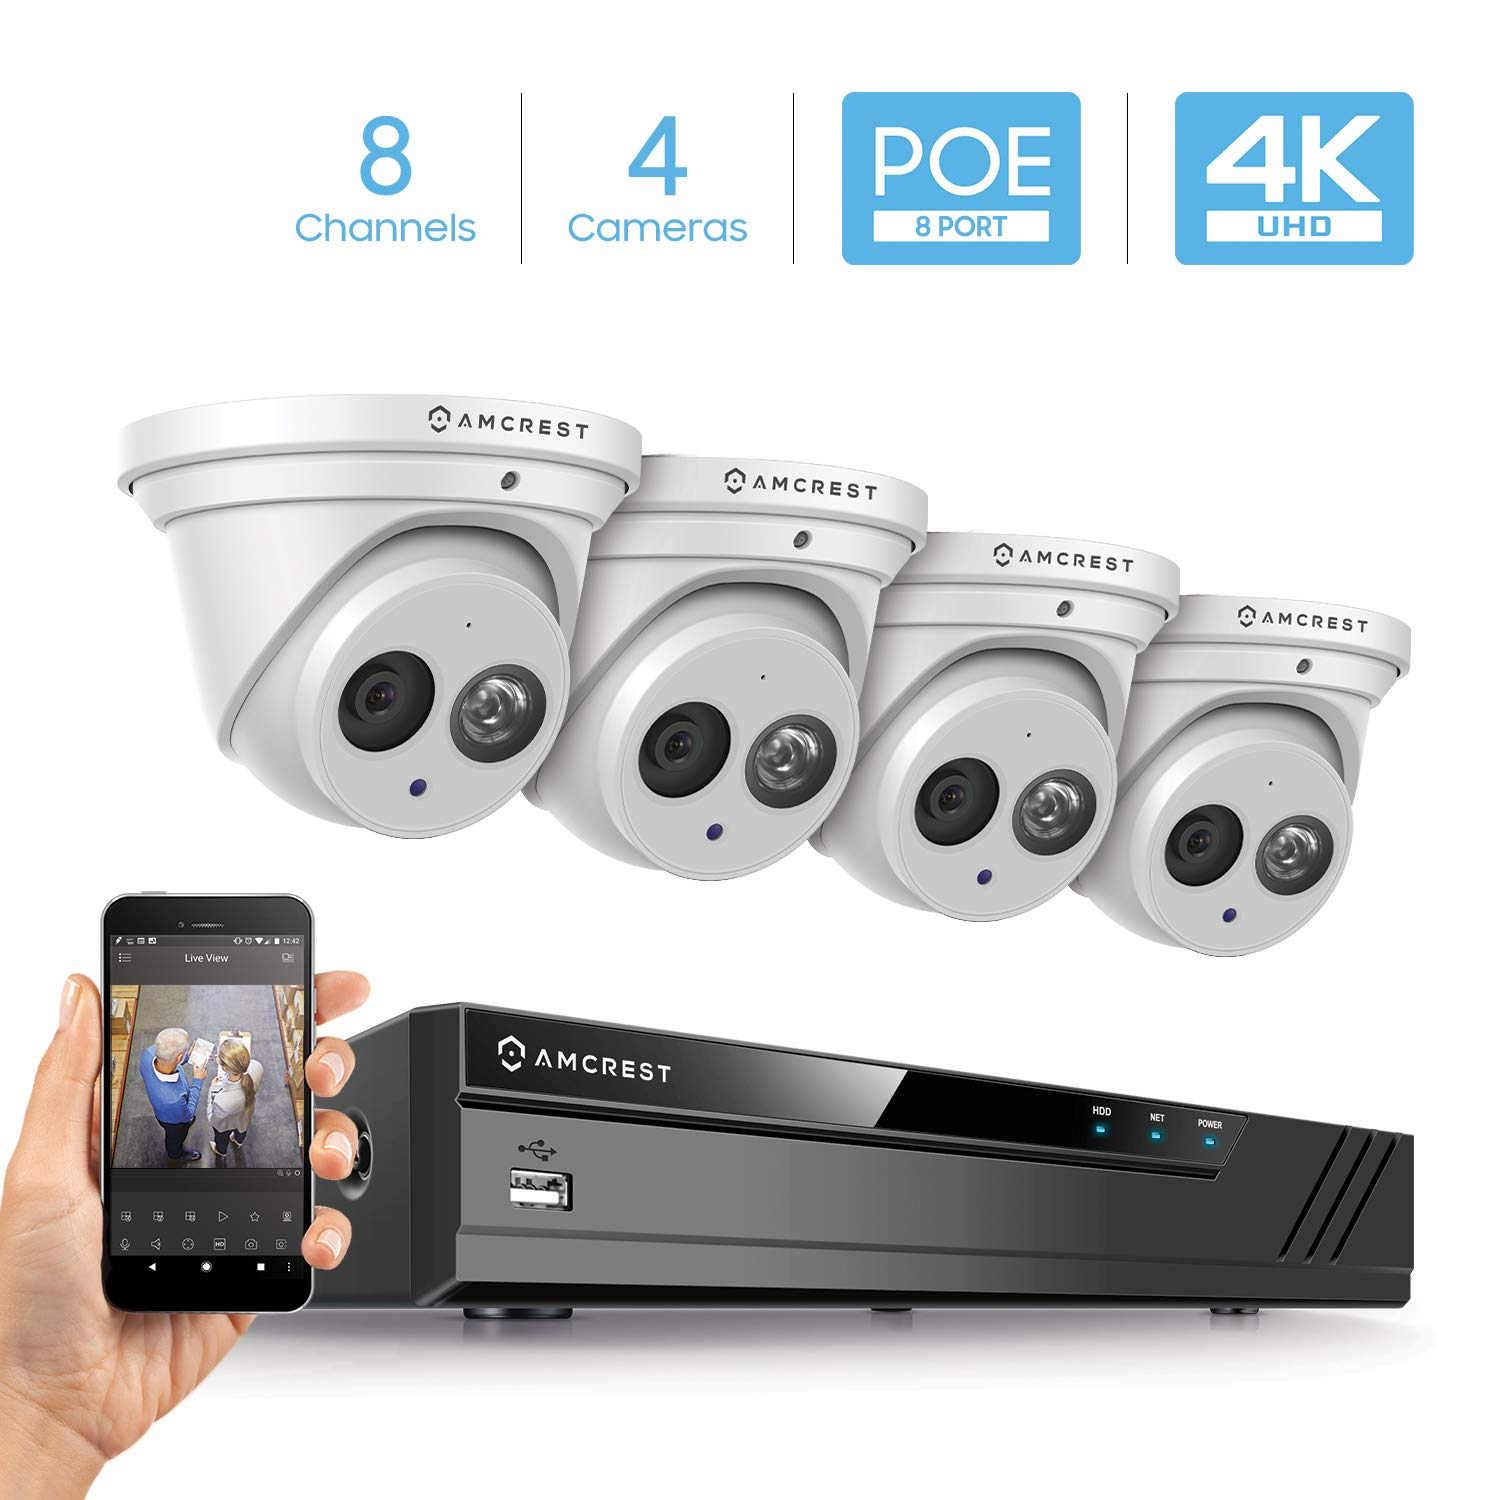 Amcrest 4K Security Camera System w/ 4K 8CH PoE NVR, (4) x 4K (8-Megapixel) IP67 Weatherproof Metal Turret Dome POE IP Cameras (3840x2160), 2.8mm Wide Angle Lens, NV4108E-IP8M-T2499EW4 (White) by Amcrest